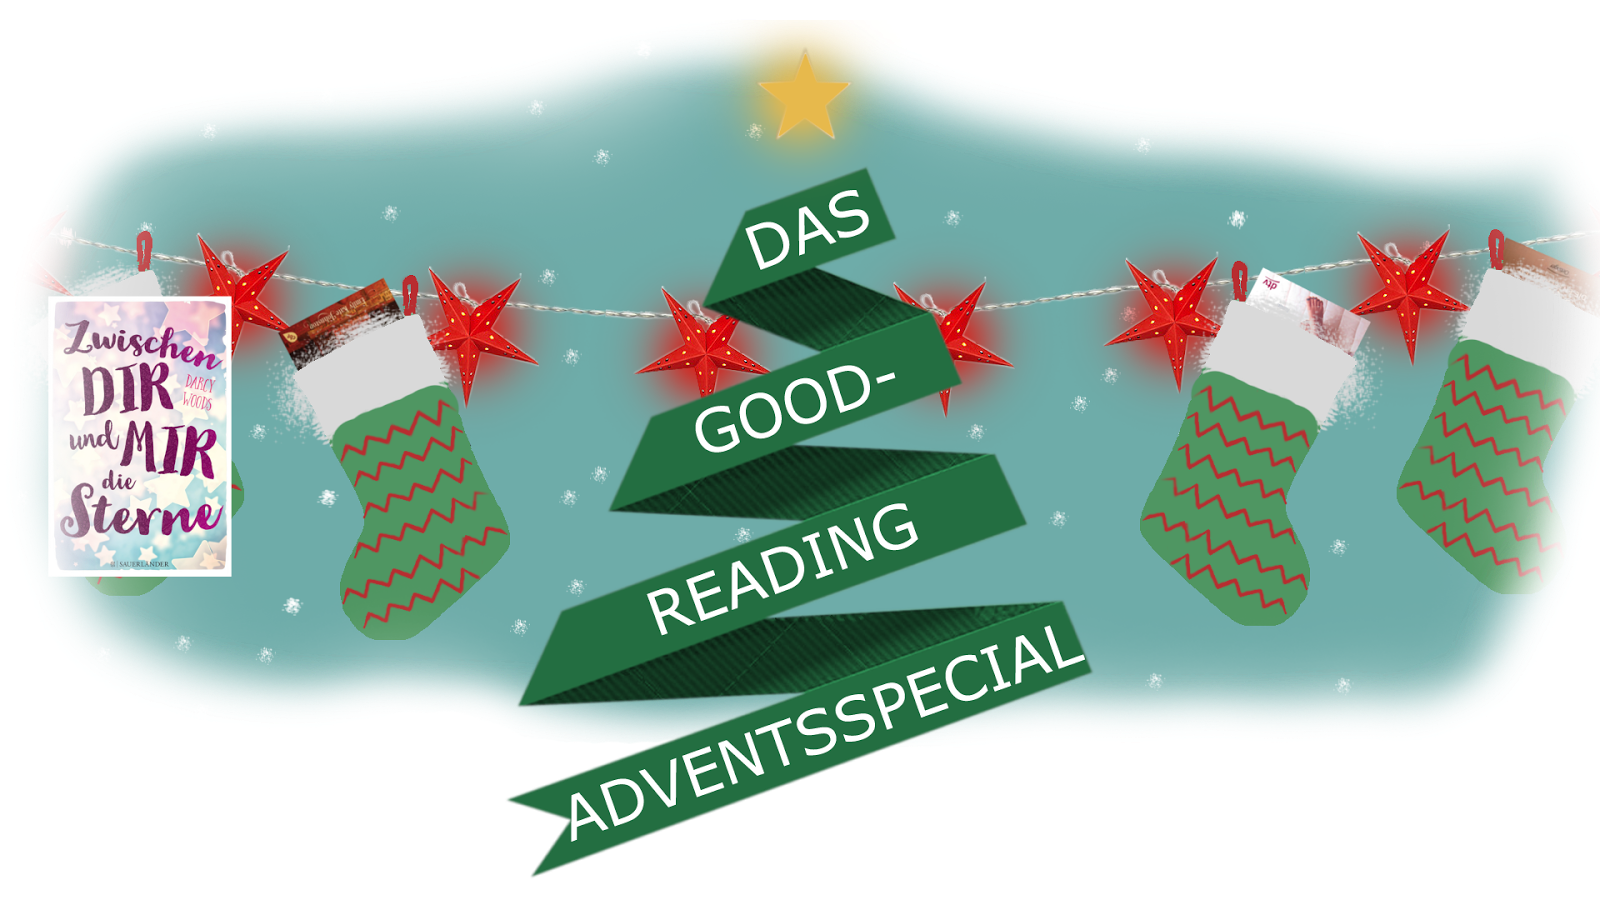 Goodreading Adventsgewinnspiel 2016 1 Advent